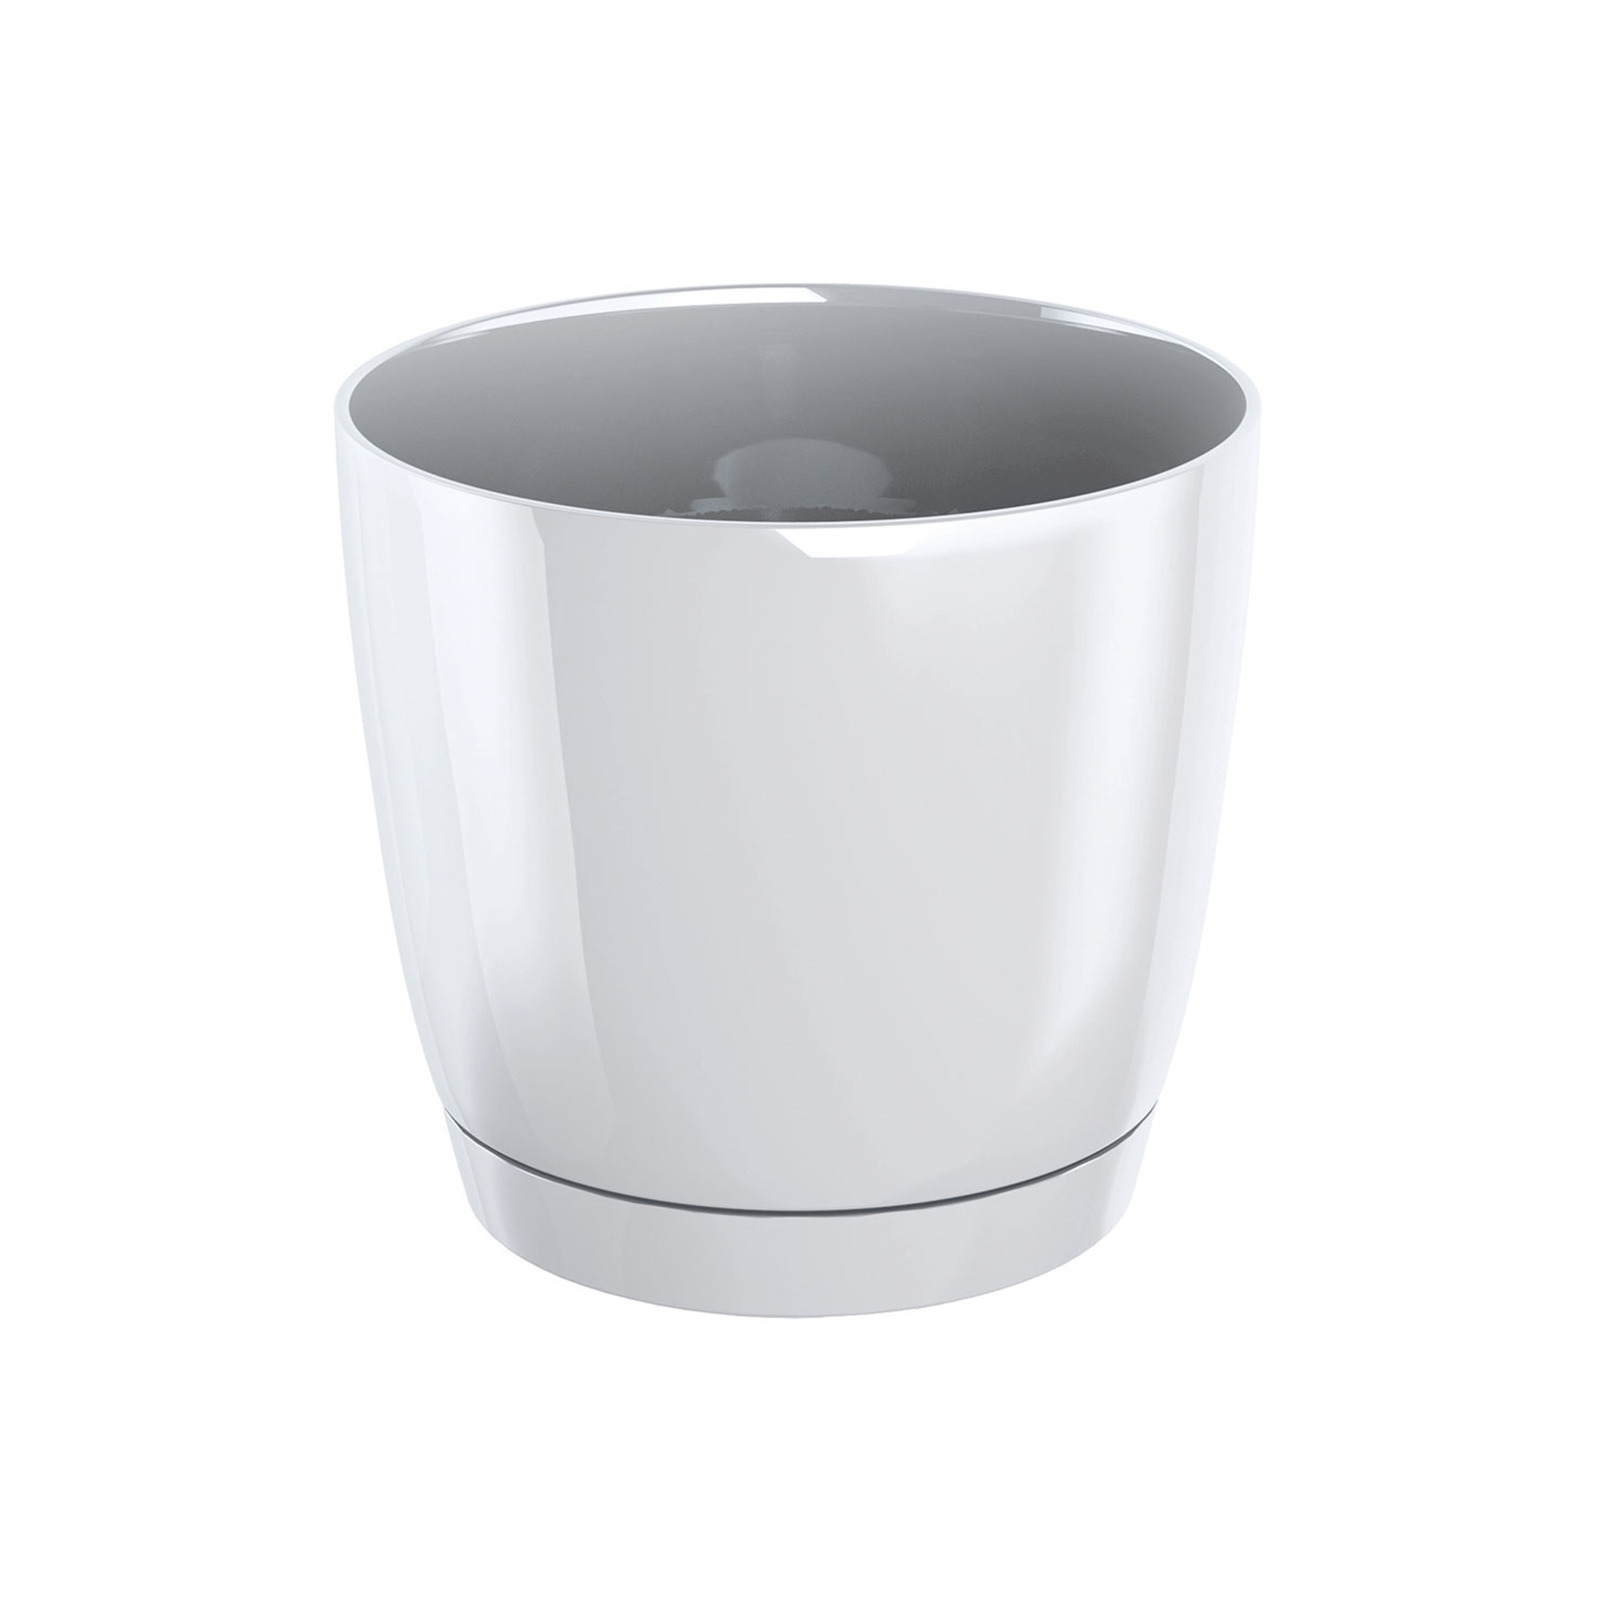 Prosperplast Coubi Flower Pot - White (120mm X 110mm)